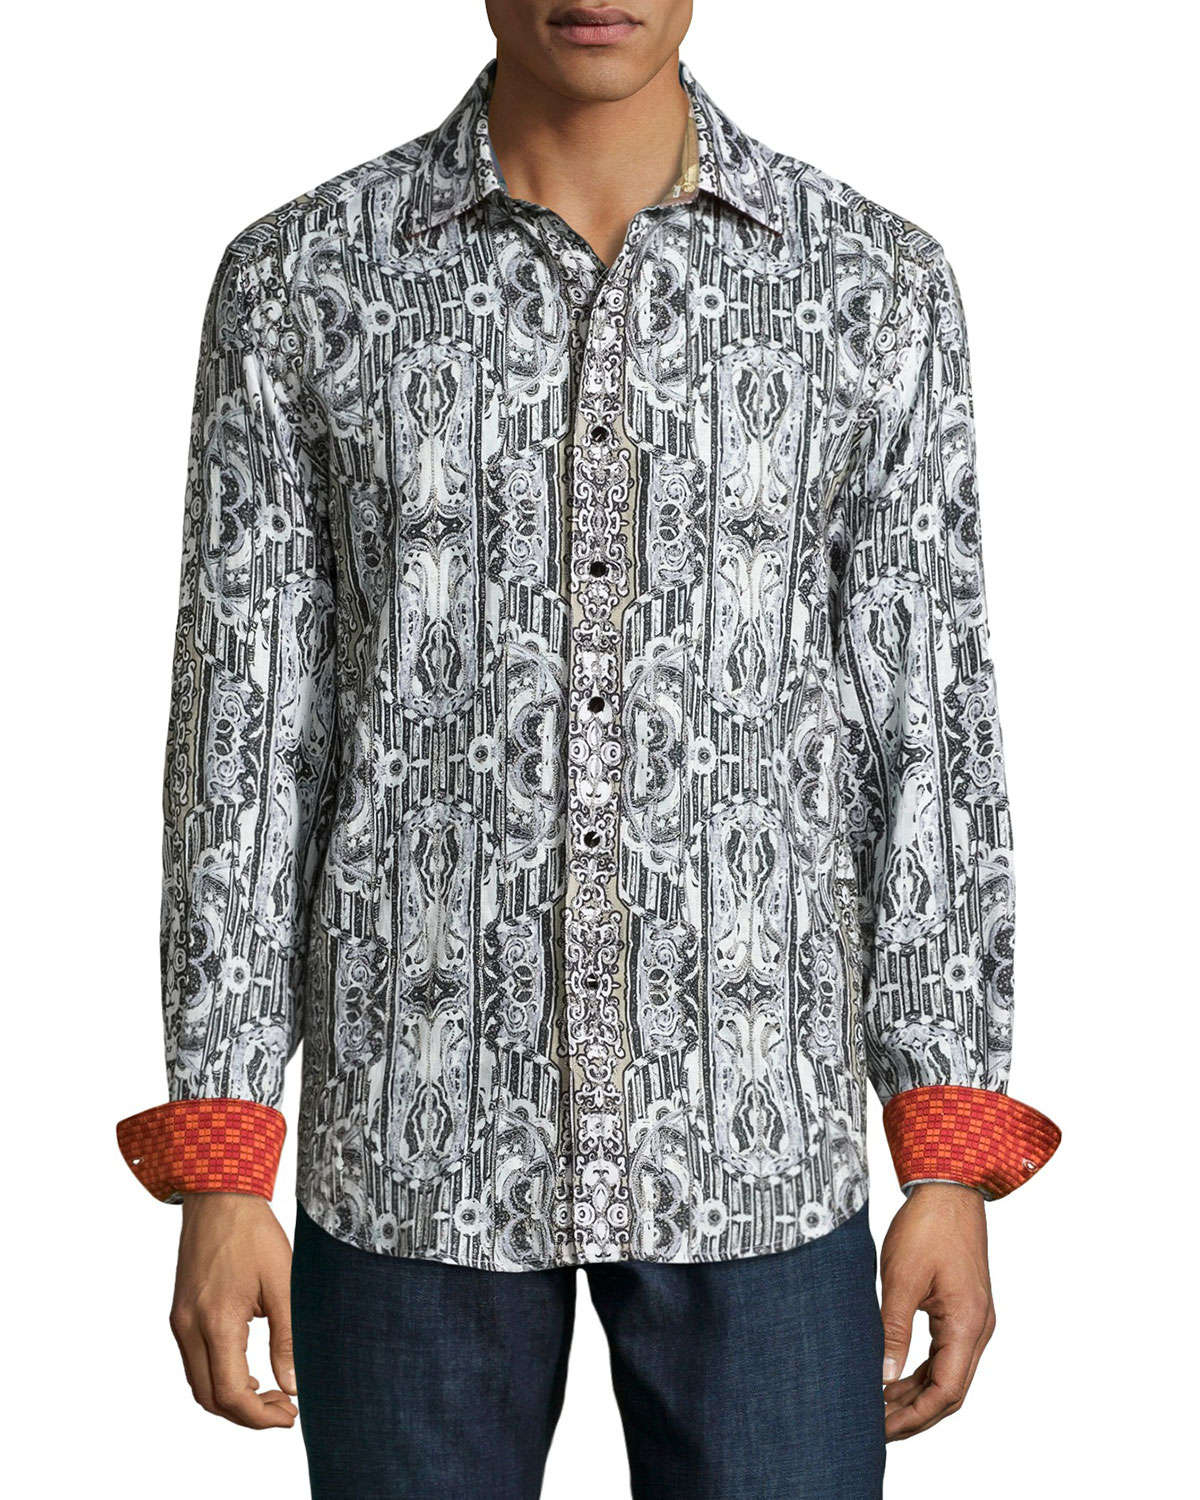 Robert graham pleasant valley printed linen shirt in gray for Where are robert graham shirts made